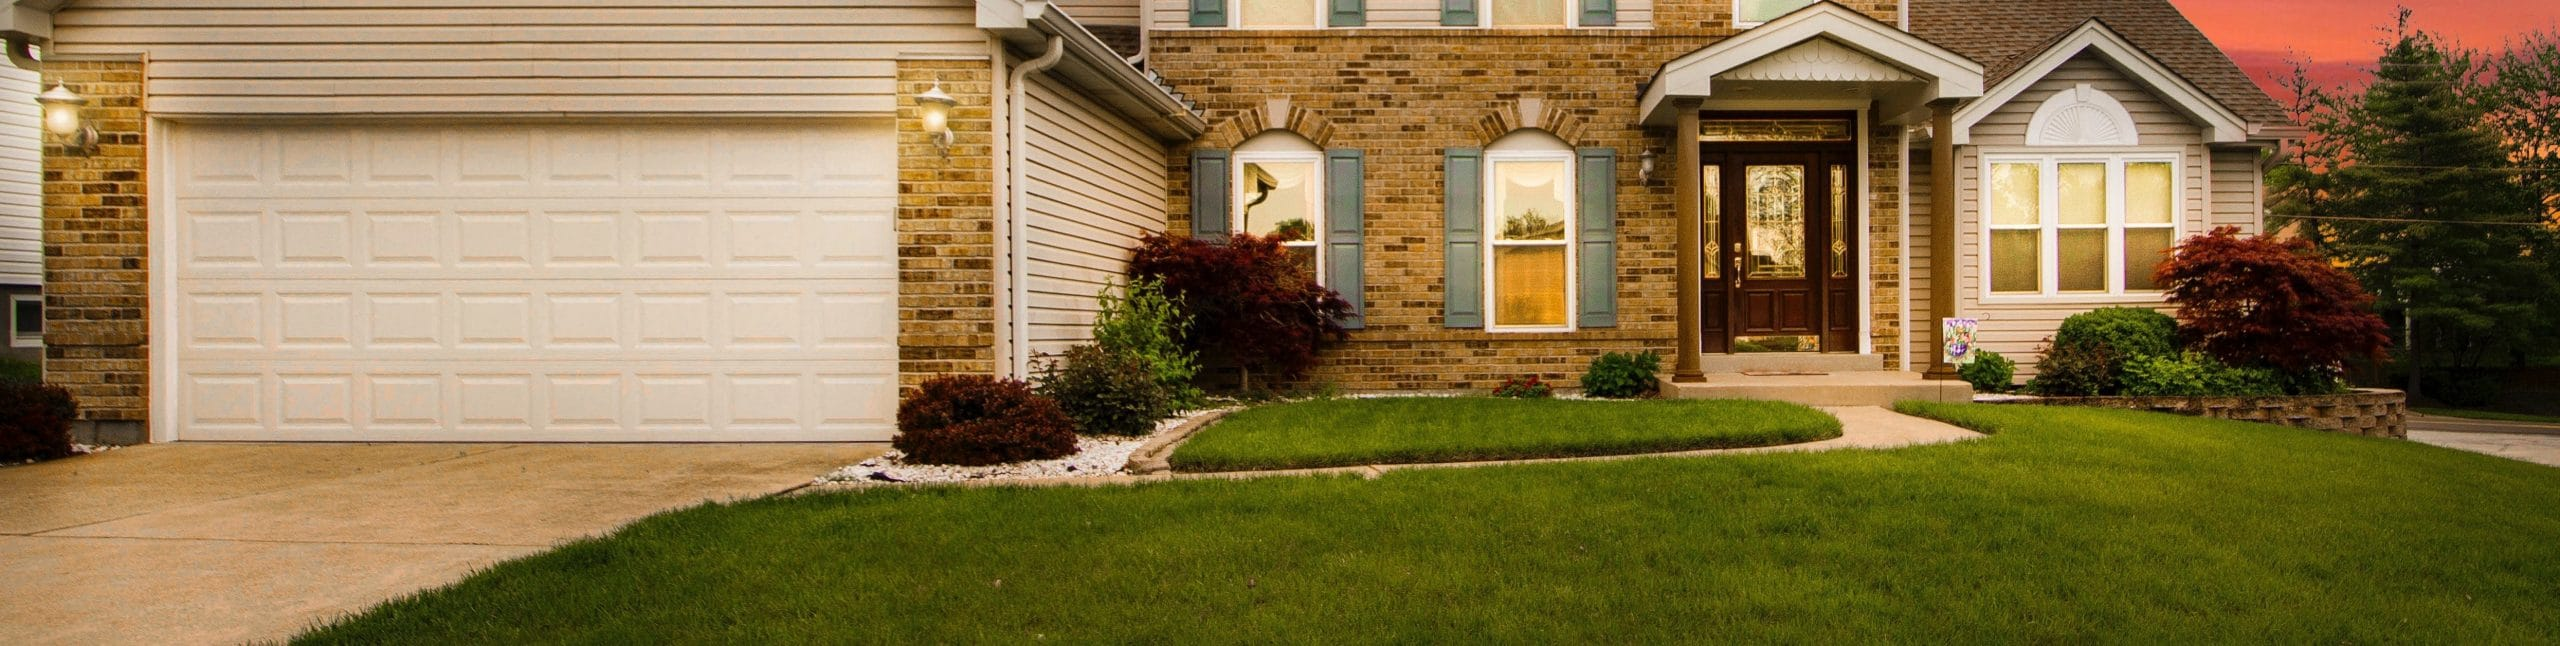 Suburban home with lawn care services in Chicago